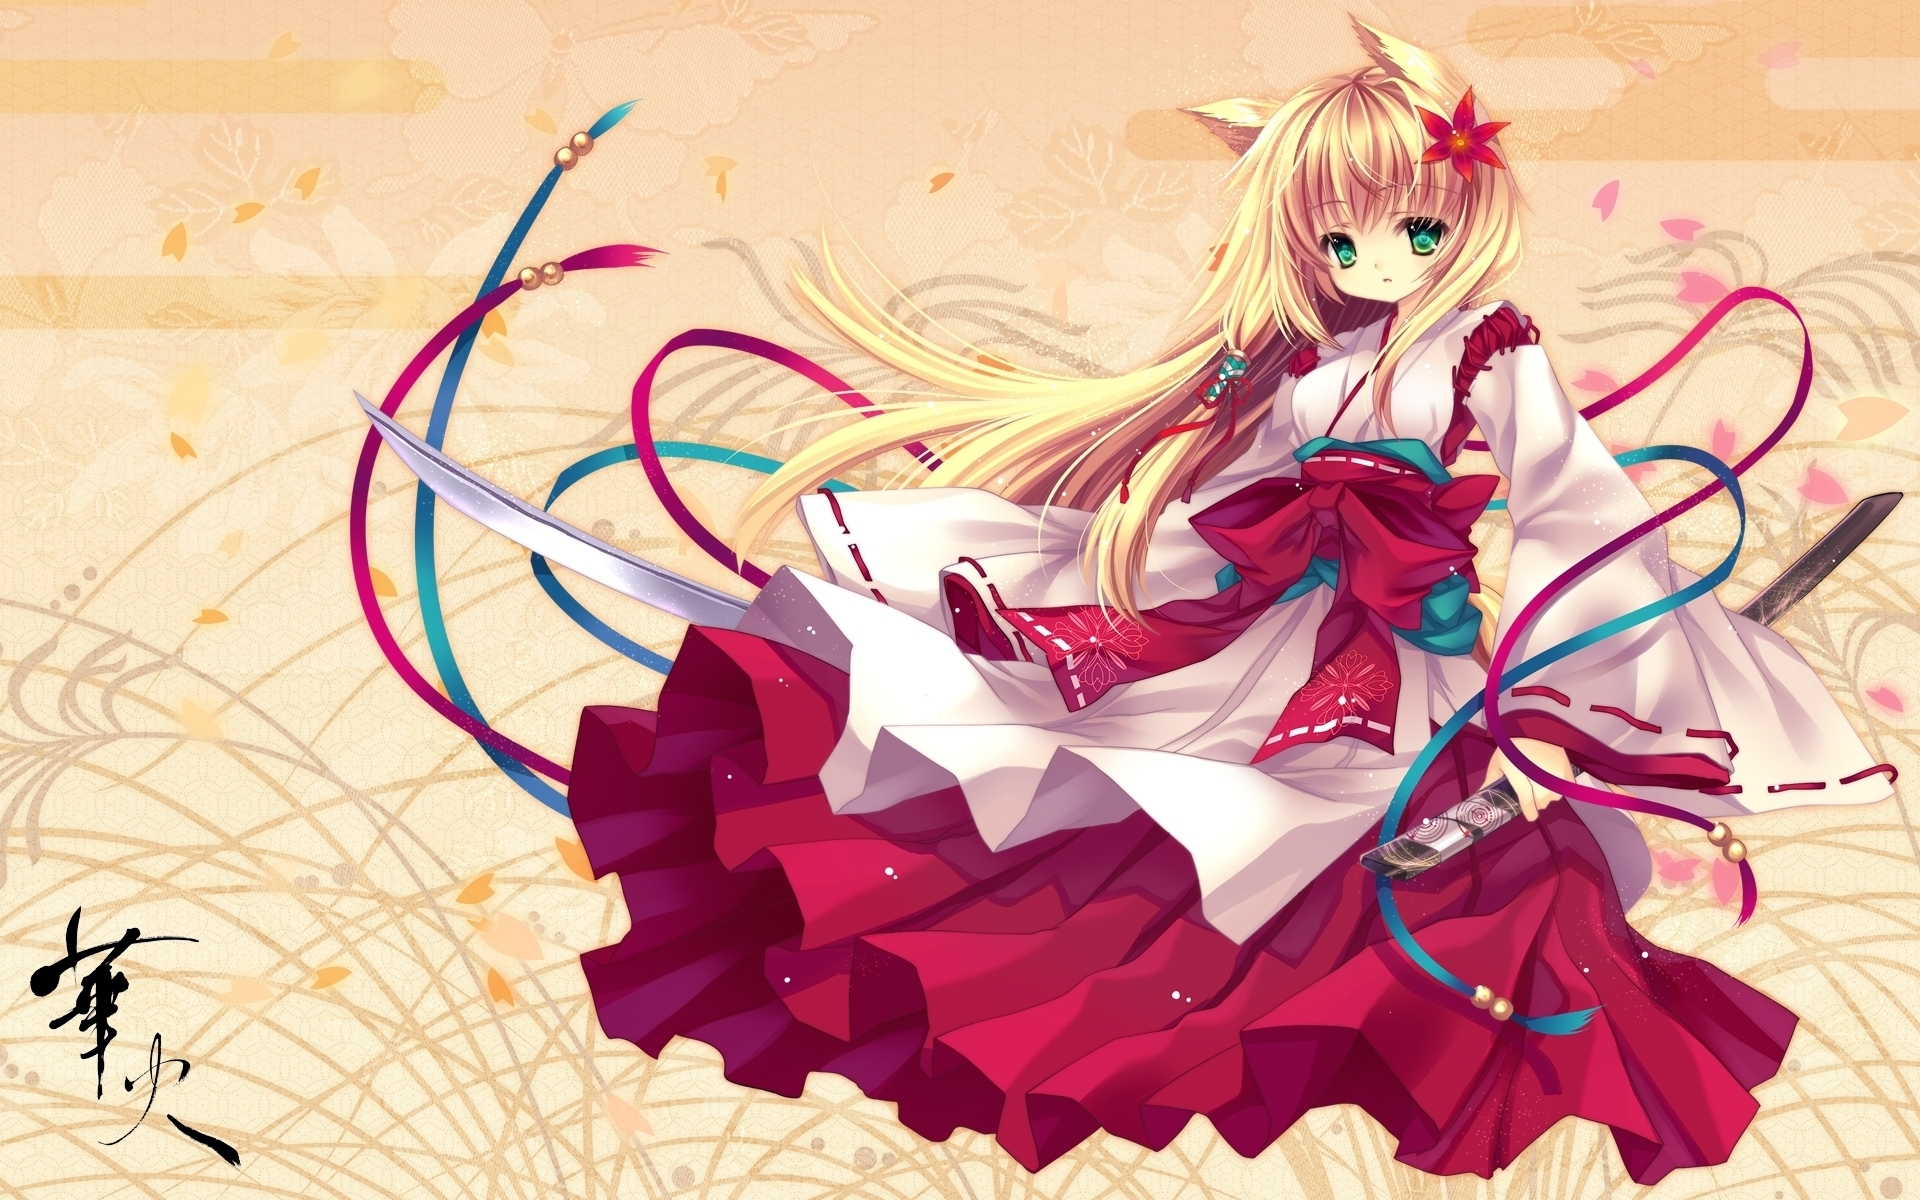 Anime Girl In Kimono wallpaper